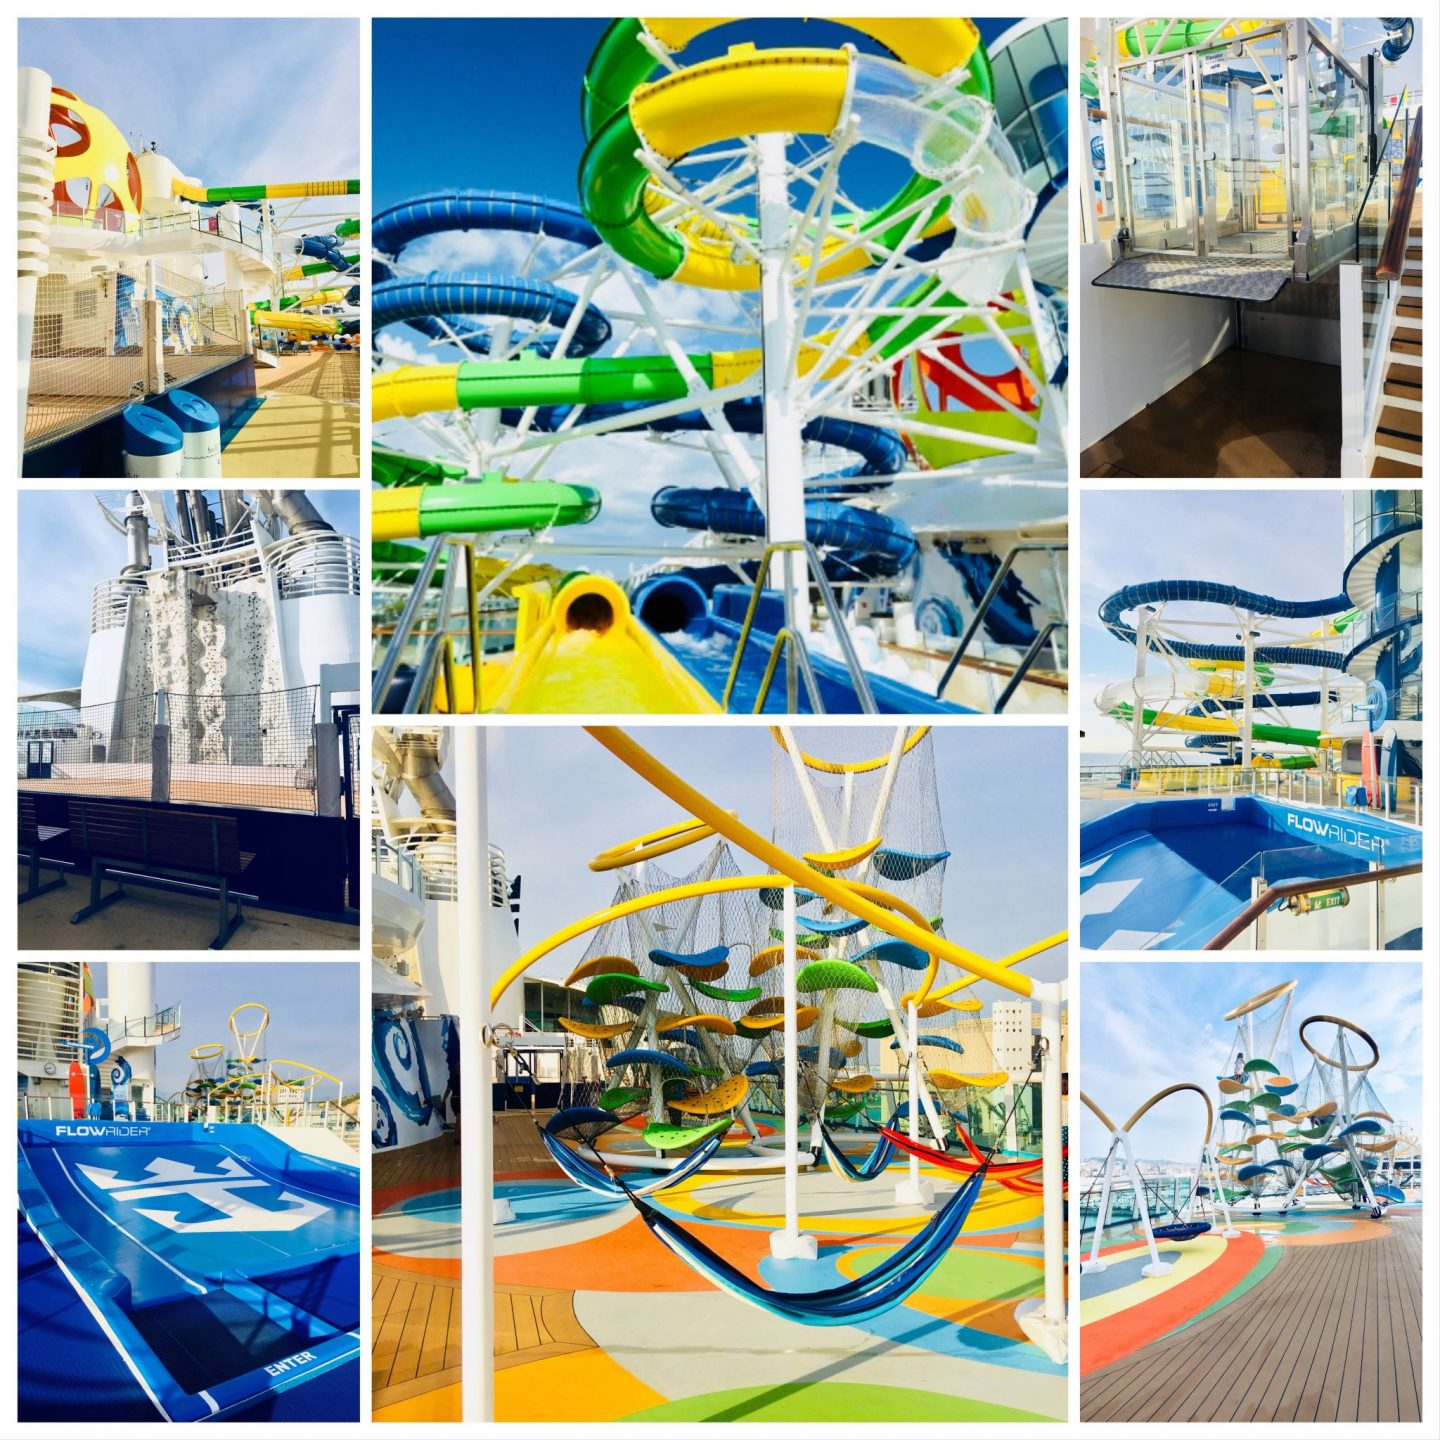 Royal Caribbean, Independence Of the Seas